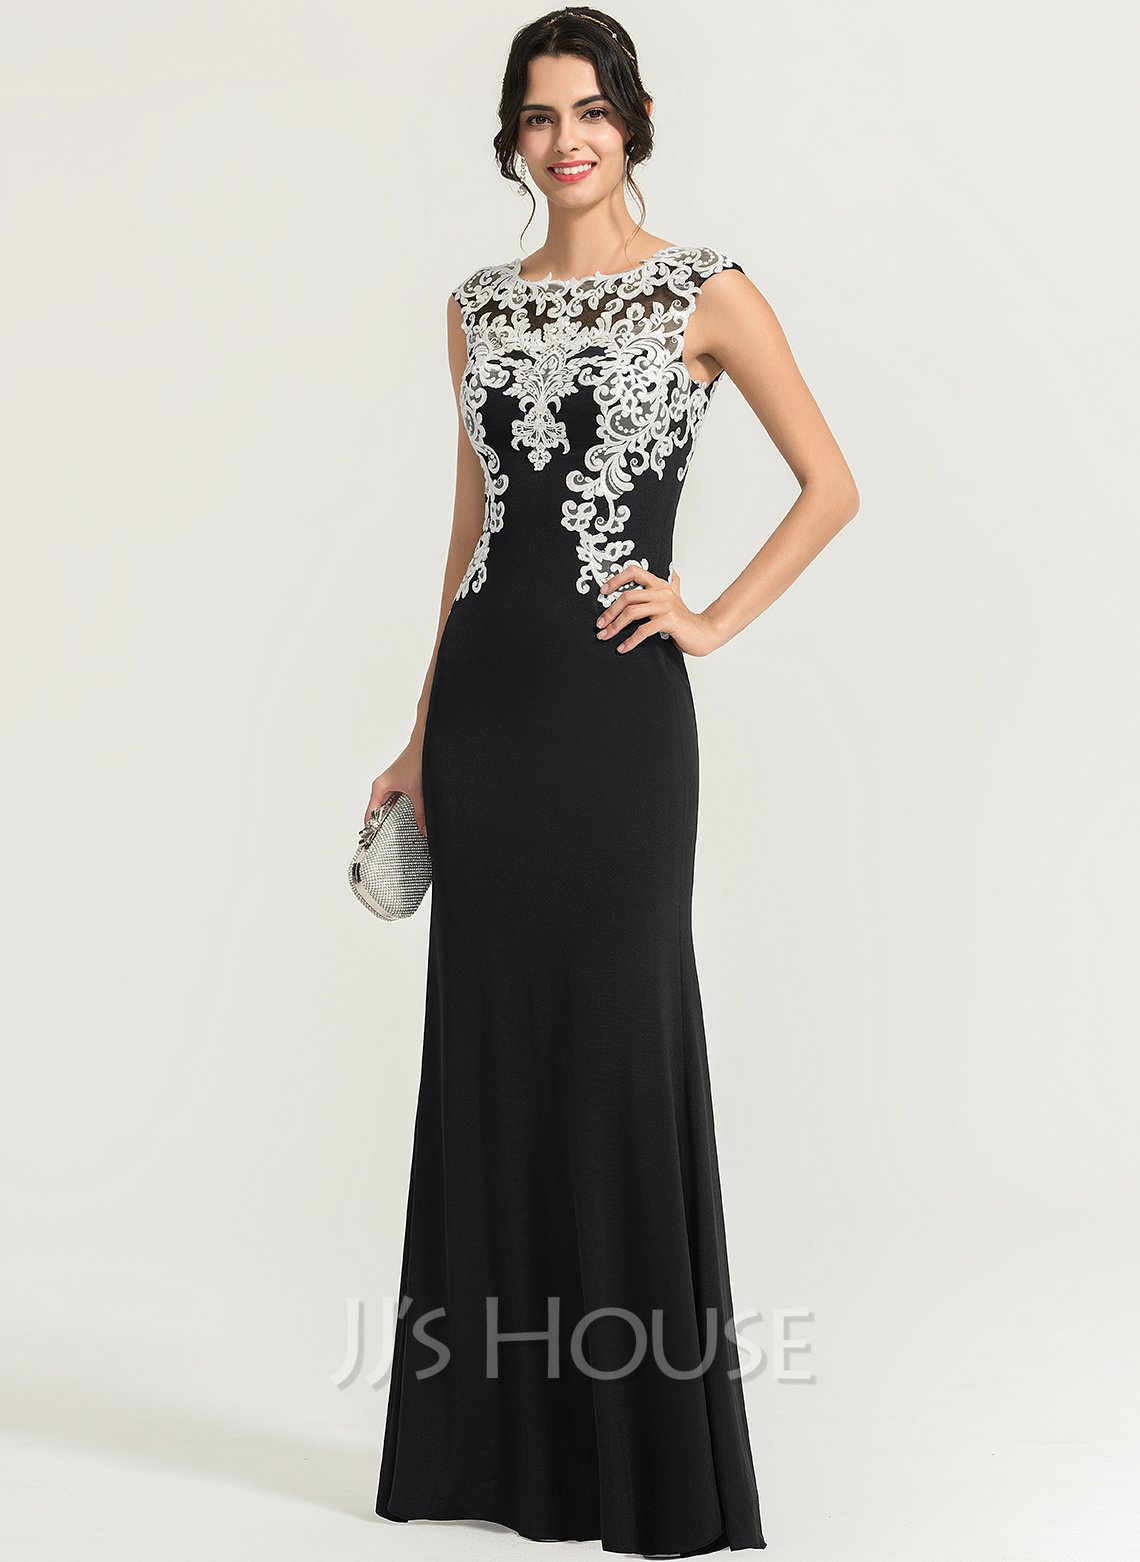 Sheath/Column Scoop Neck Floor-Length Jersey Evening Dress